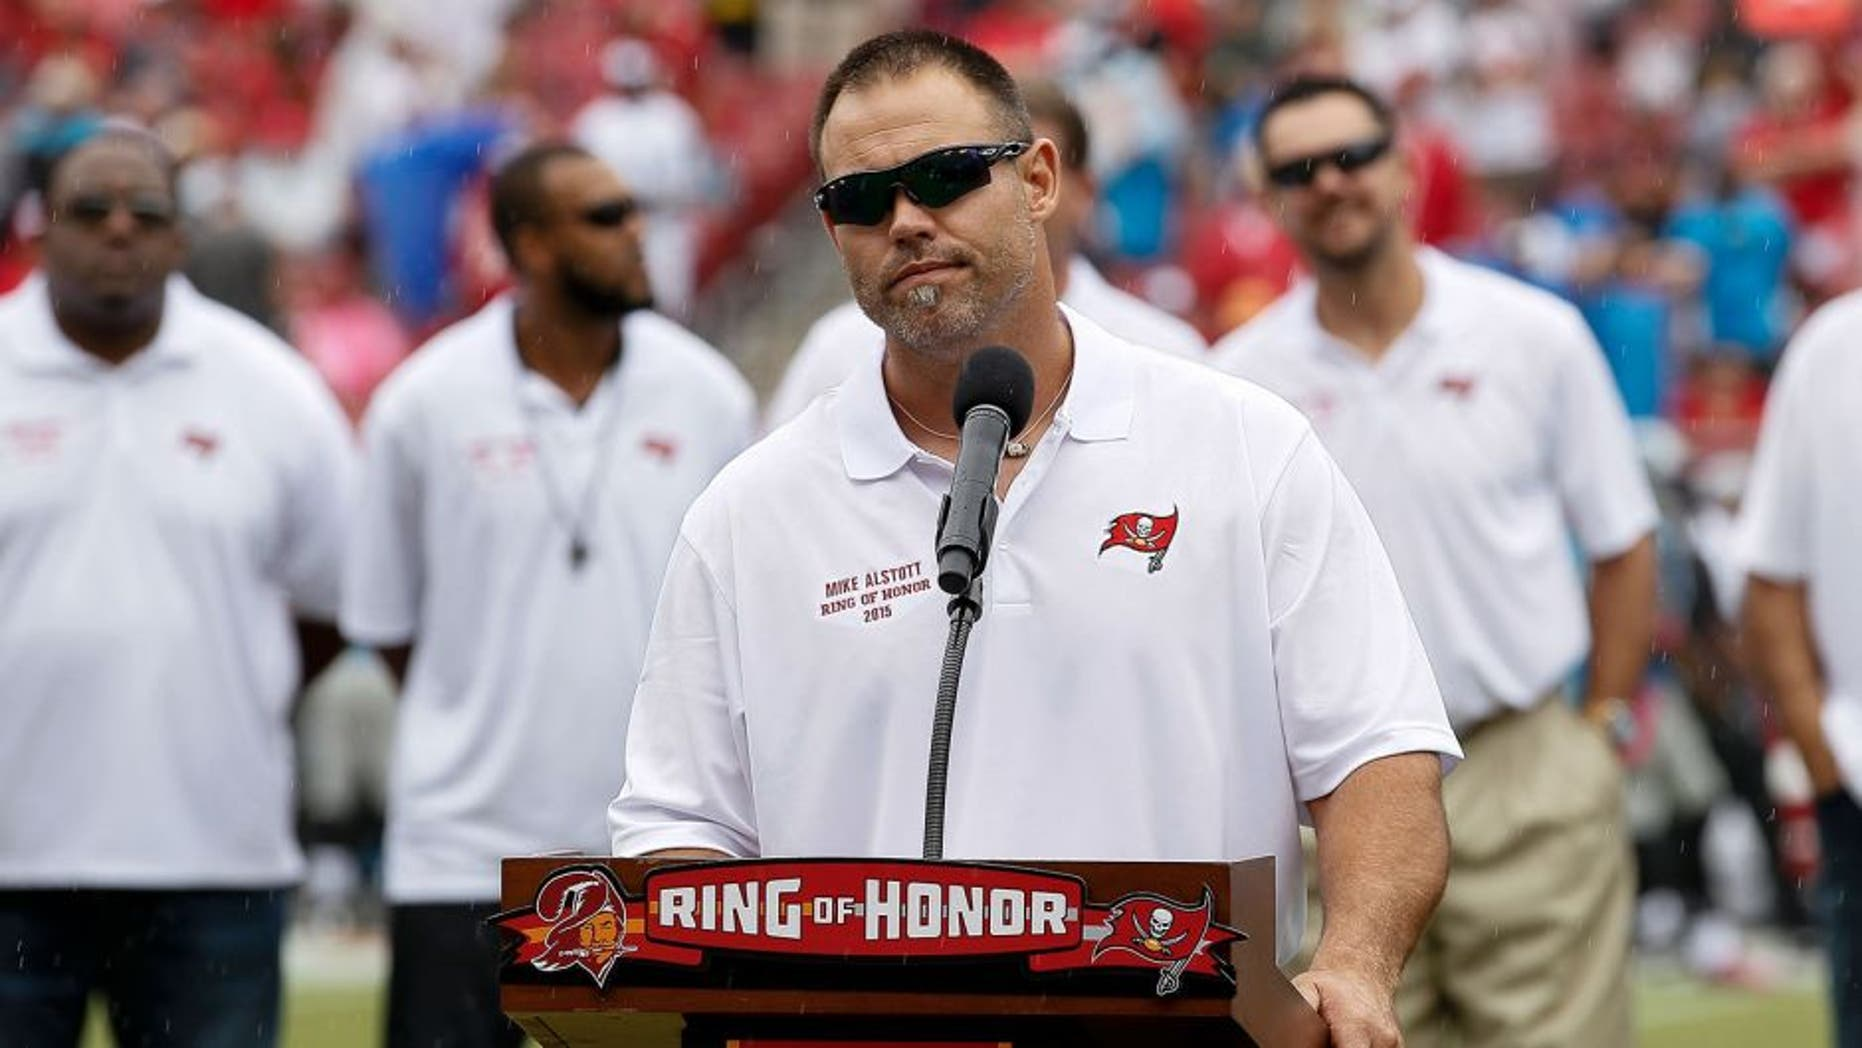 TAMPA, FL - OCTOBER 4: Former Runningback Mike Alstott of the Tampa Bay Buccaneers adresses the fans as he is being honored by being placed in the Ring of Honor during halftime against the Carolina Panthers at Raymond James Stadium on October 4, 2015 in Tampa, Florida. Alstott played his entire 12 year career with the Buccaneers from 1996 to 2007. Panthers defeated the Buccaneers 37 to 23. (Photo by Don Juan Moore/Getty Images)